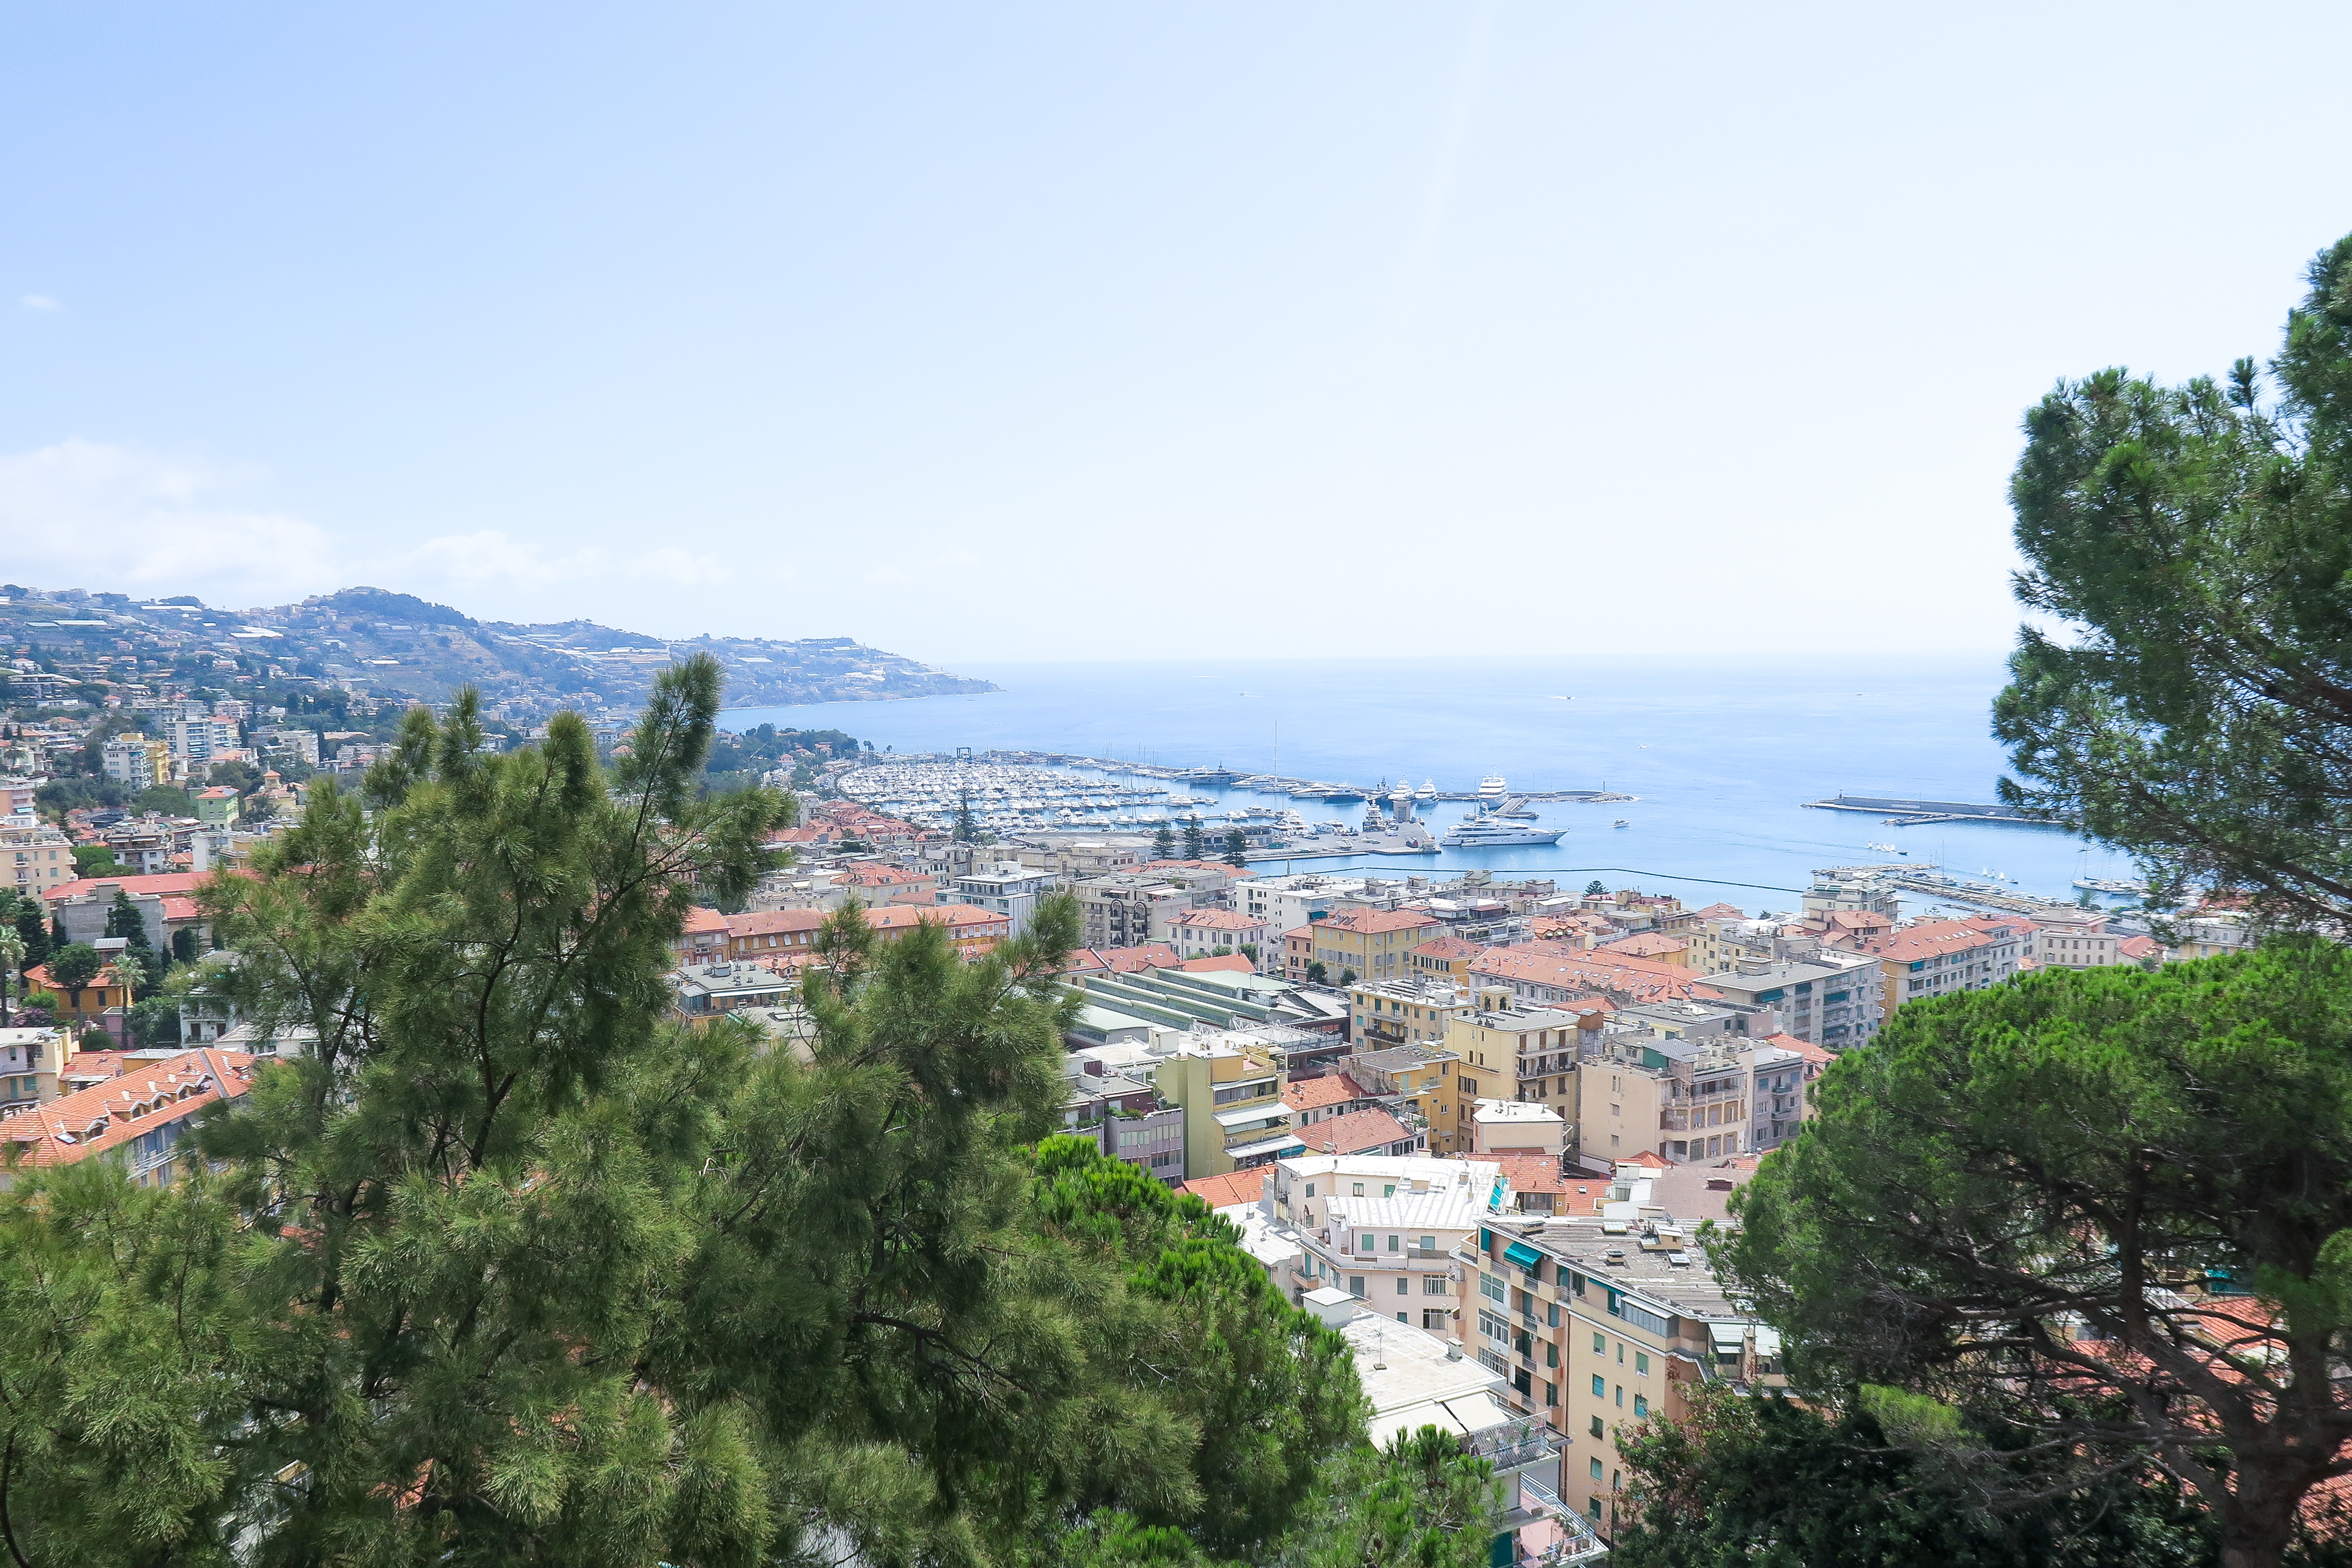 San Remo. Travel Diary by Rosie Andre. (Italy, Italian Riviera, holiday, vacation, photographs, casino, wanderlust, travel, explore, discover, food, harbour, church, architecture)